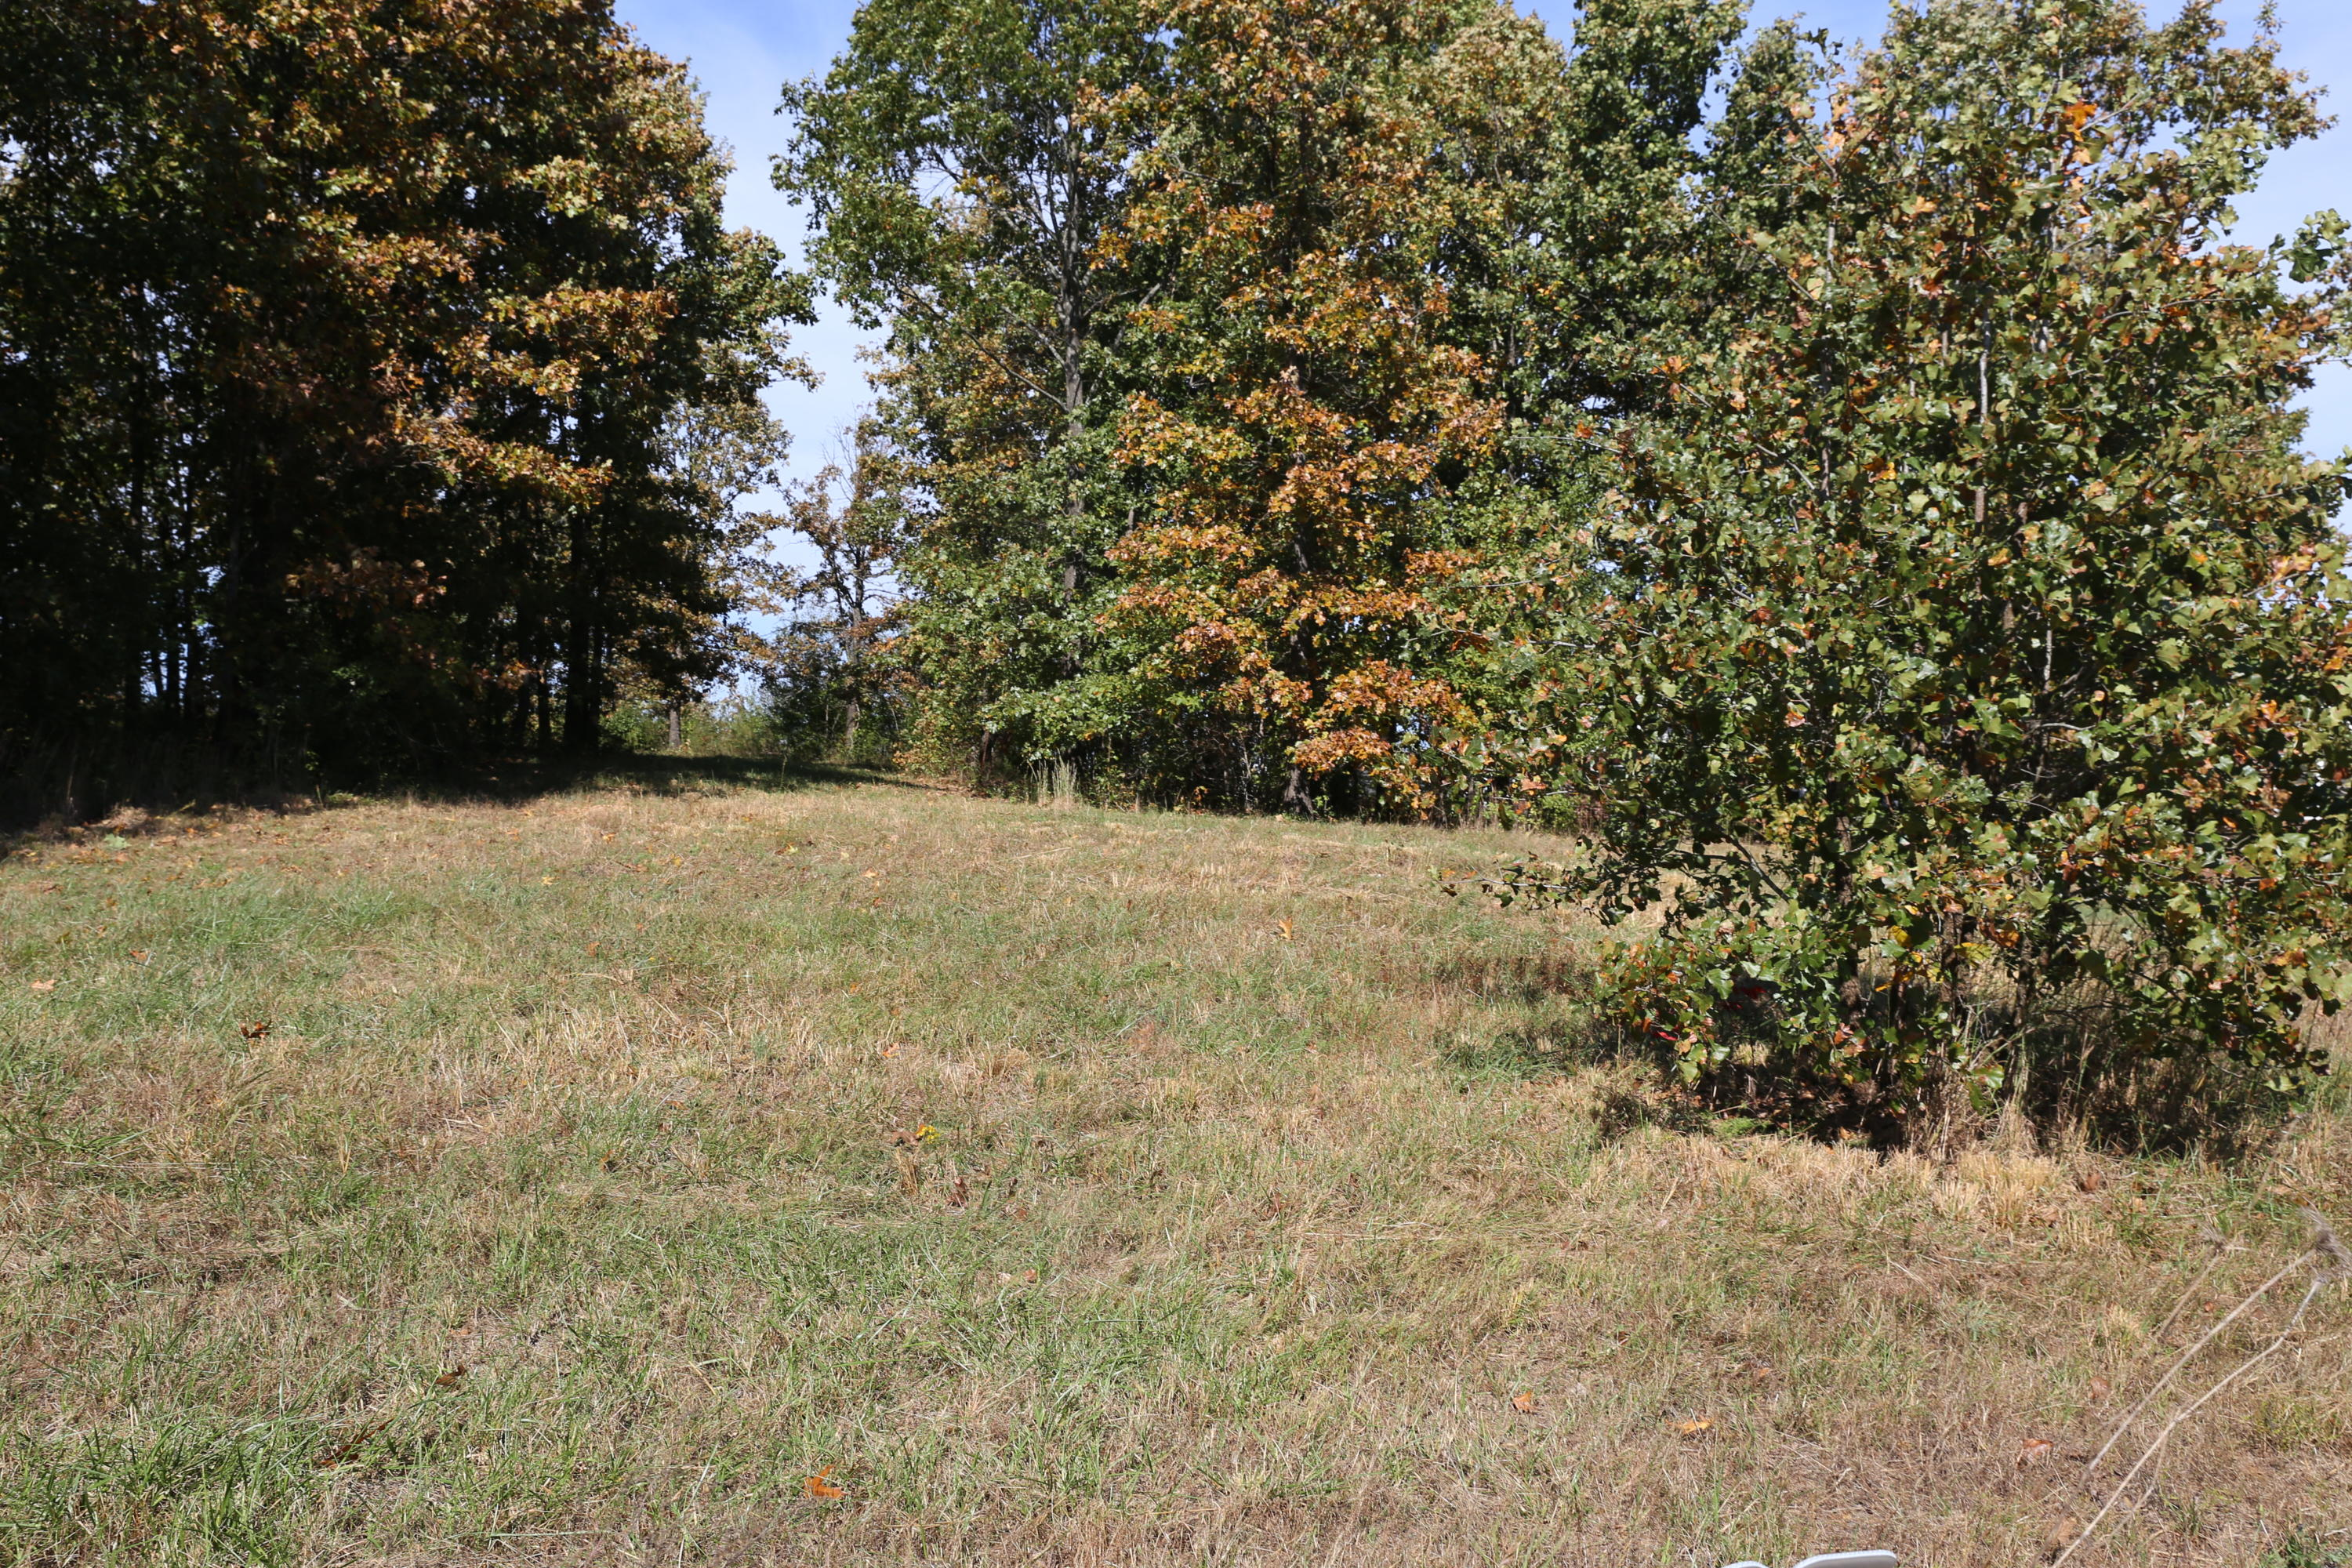 000 Wild Turkey Road Block 1 Lot 5 Property Photo